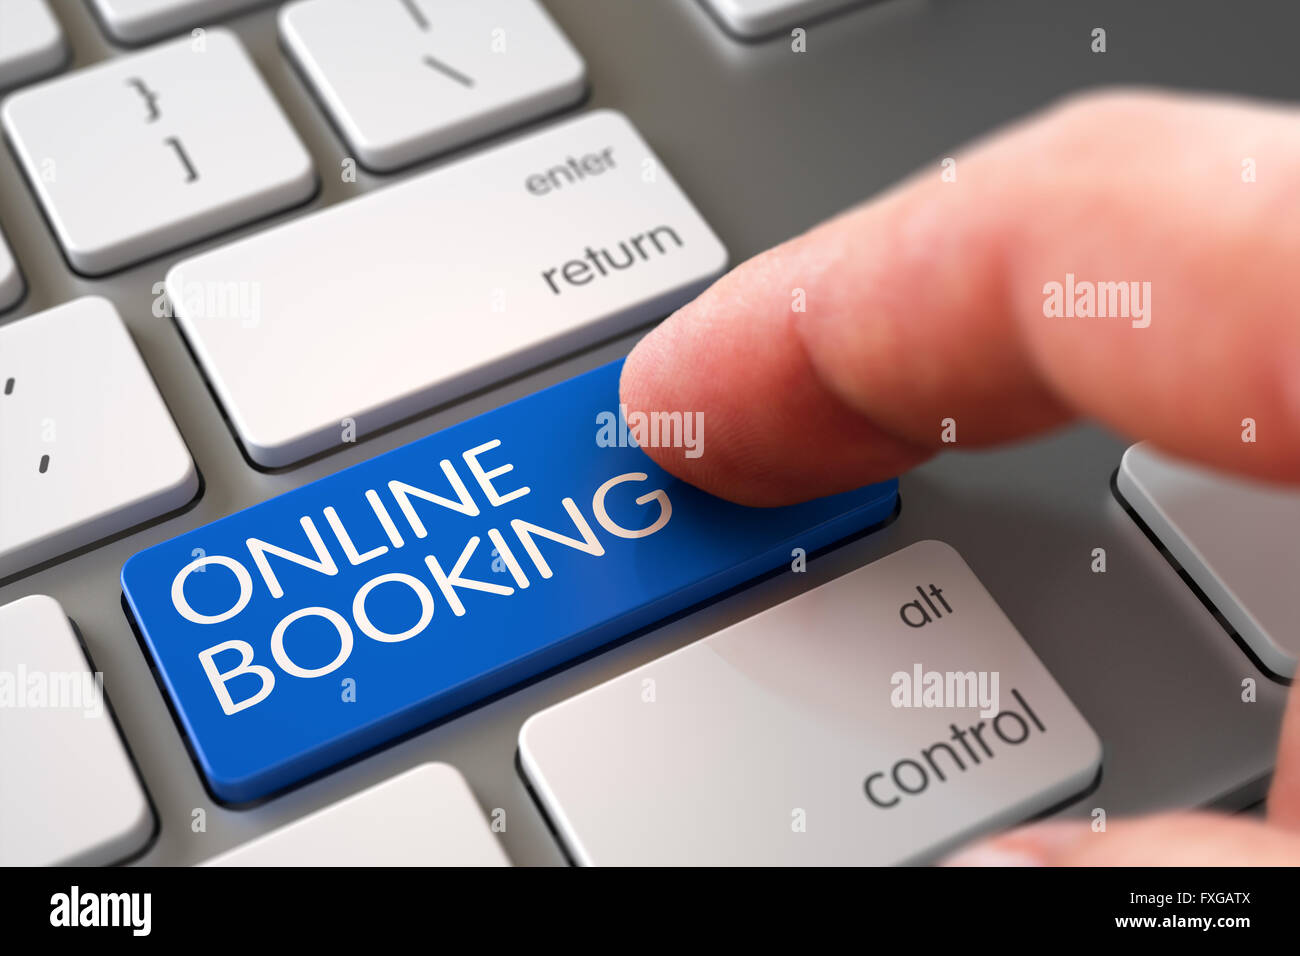 Online Booking on Keyboard Key Concept. - Stock Image